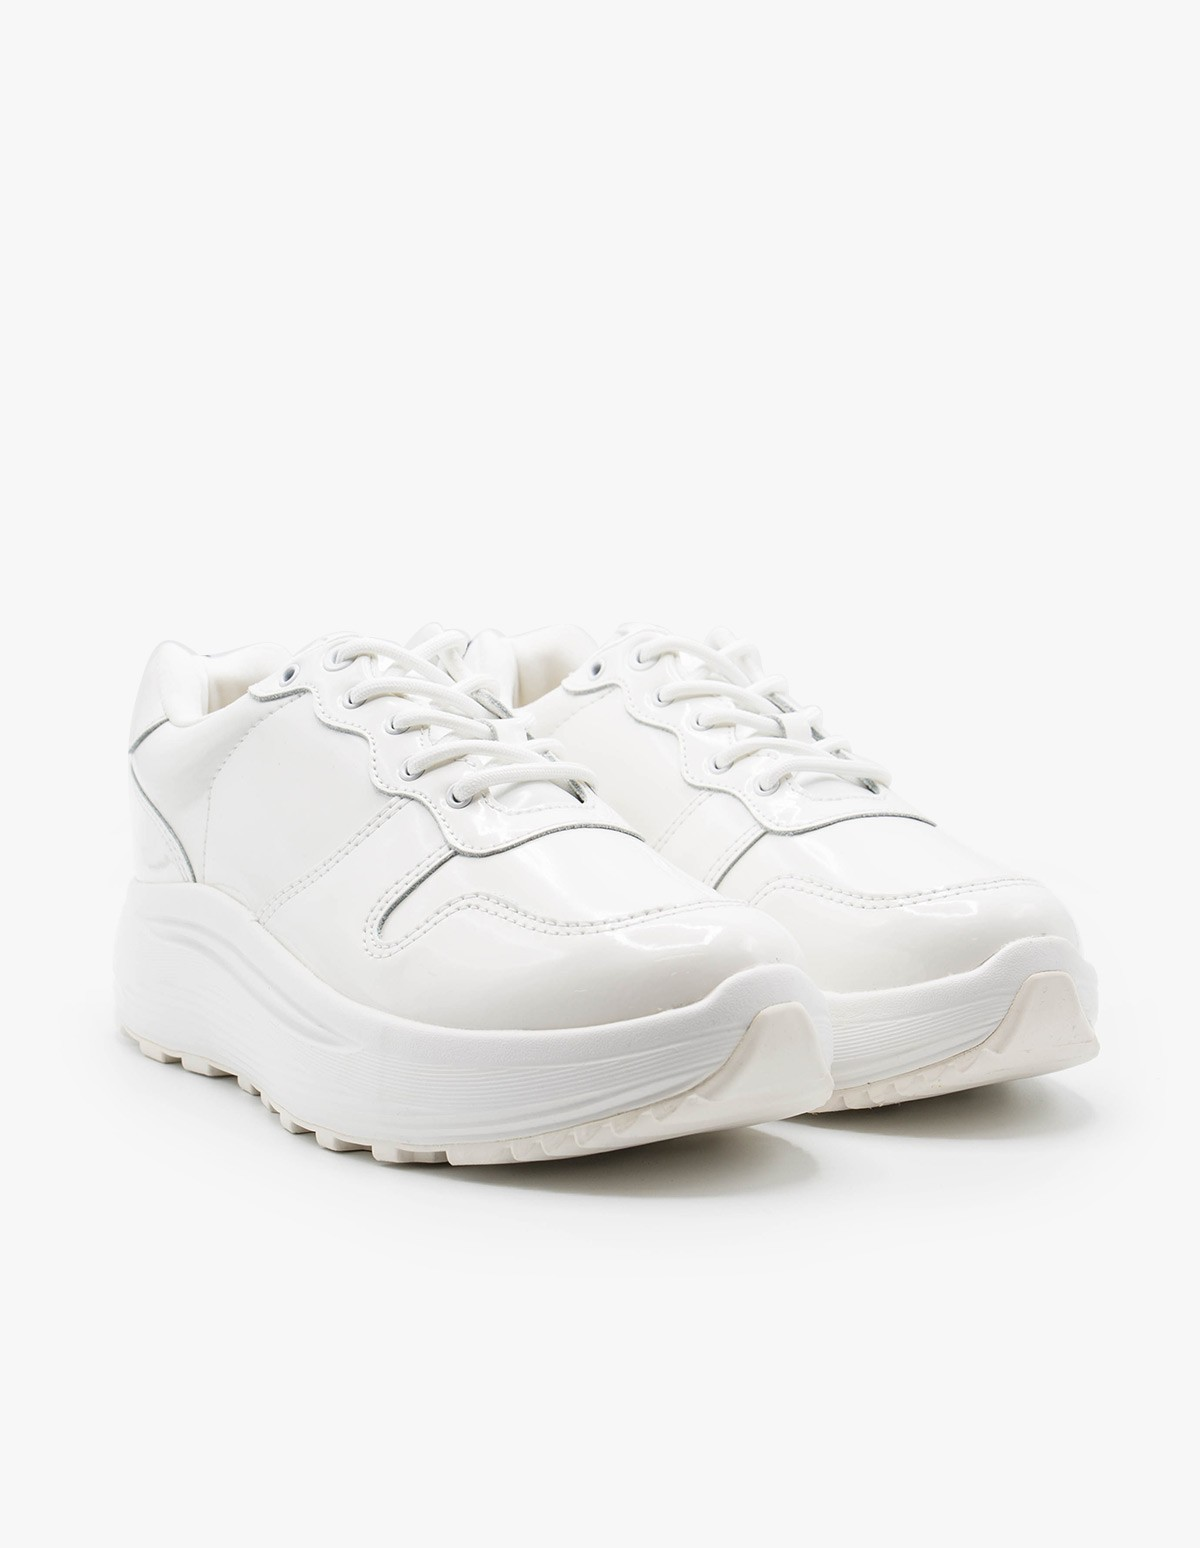 Eytys Jet Patent  in White